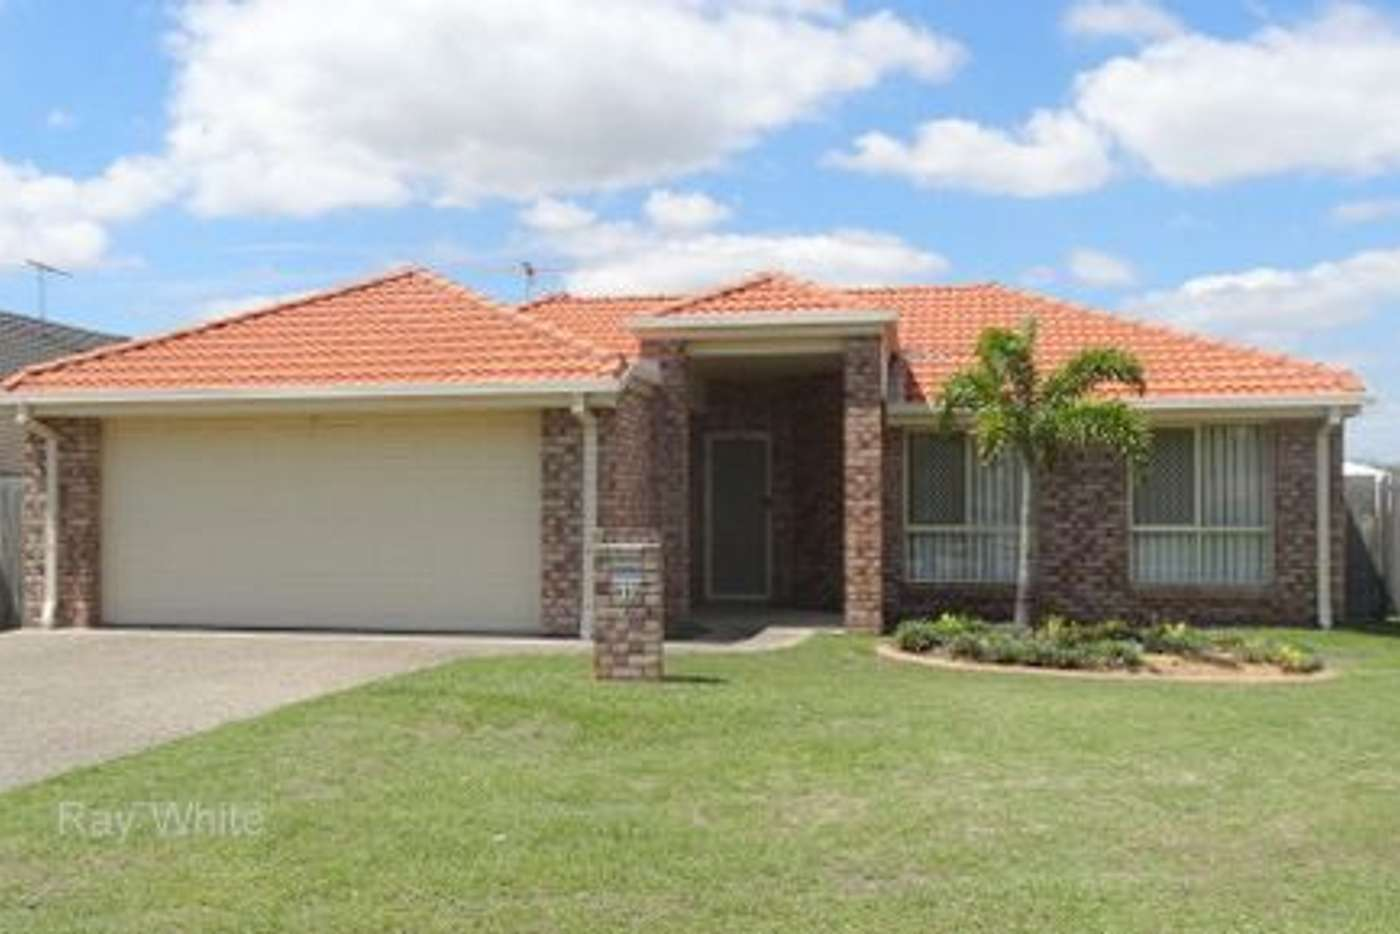 Main view of Homely house listing, 11 Gloria Court, Deception Bay QLD 4508